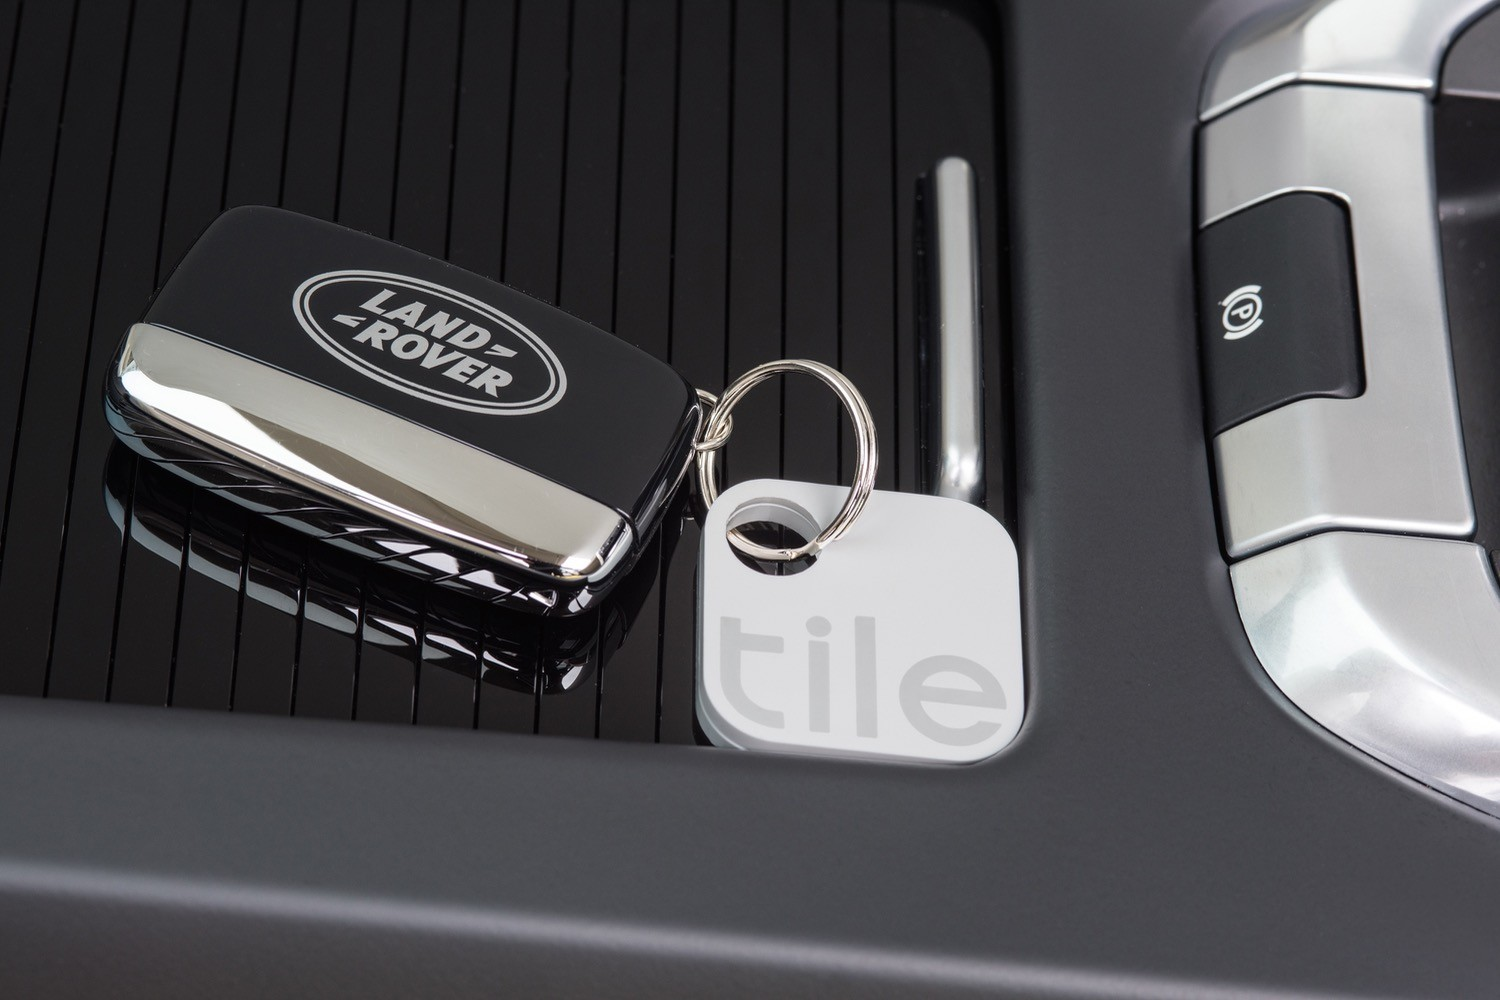 With Tile integration, your Jag or Land Rover can find those lost sunglasses